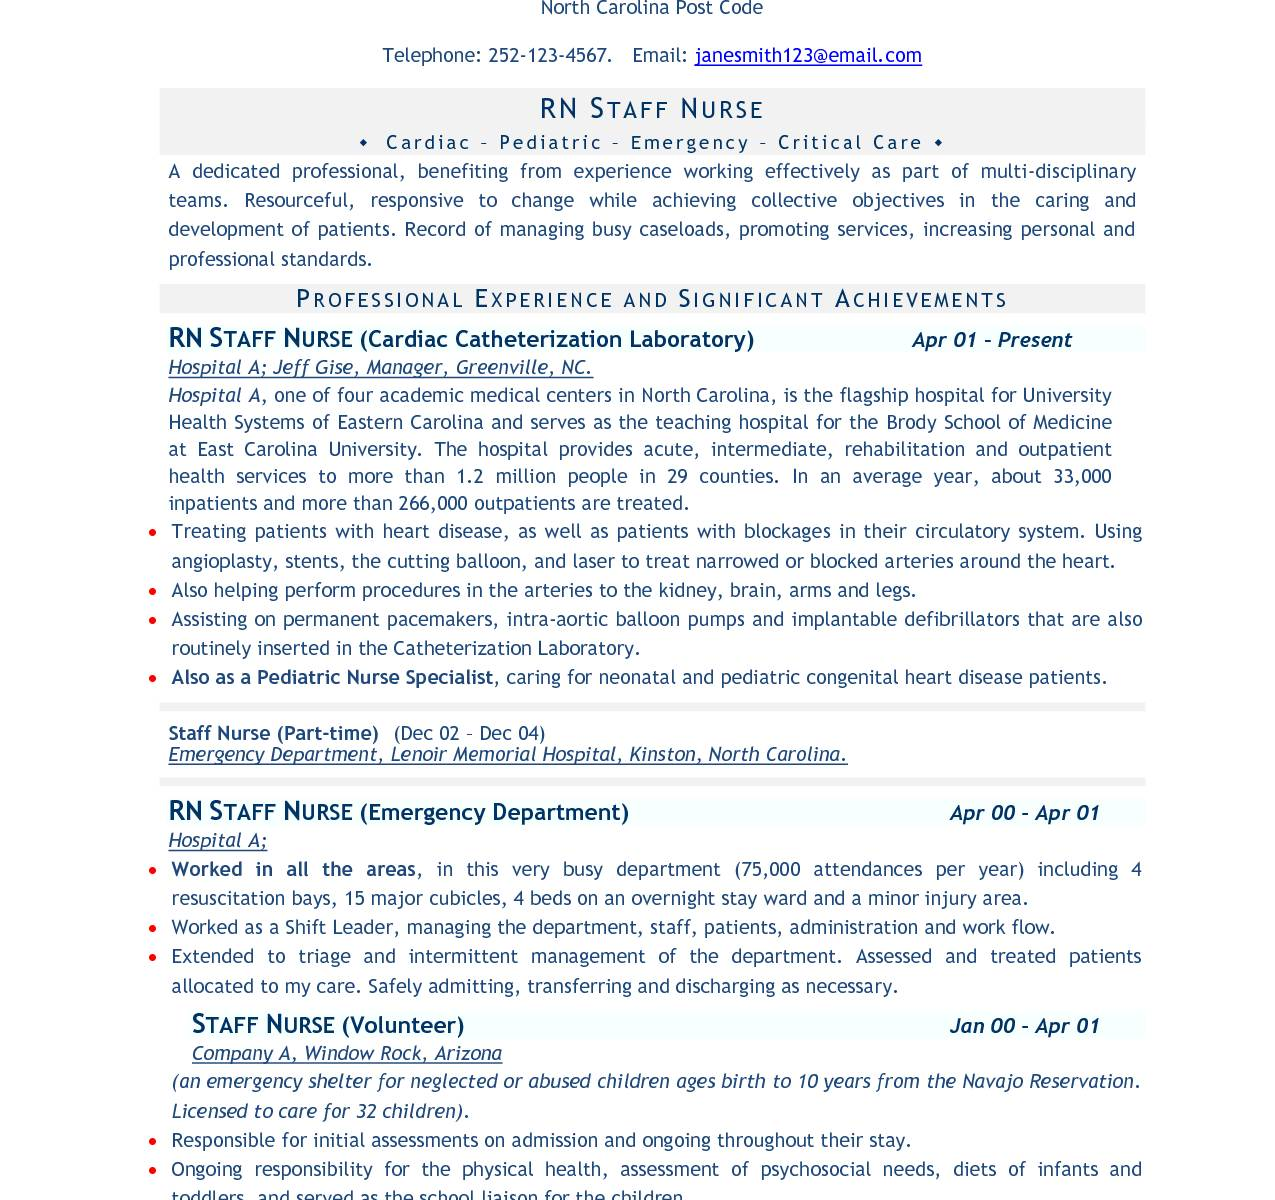 Resume Templates For Freshers Mca